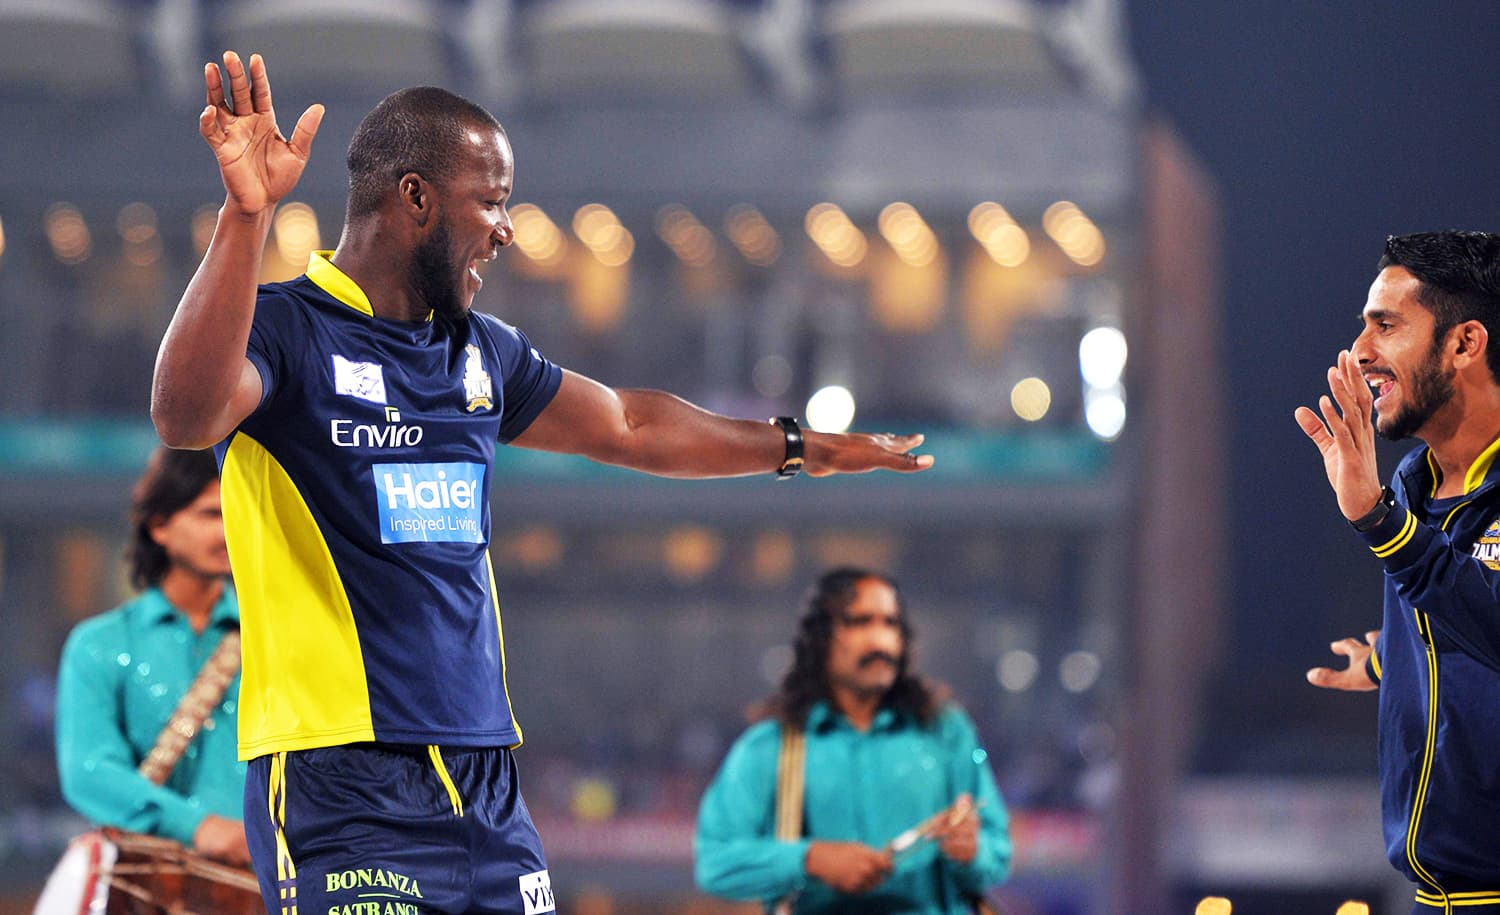 Peshawar Zalmi captain West Indies' Darren Sammy dances with teammates on a stage prior to the start of the final. ─ AFP